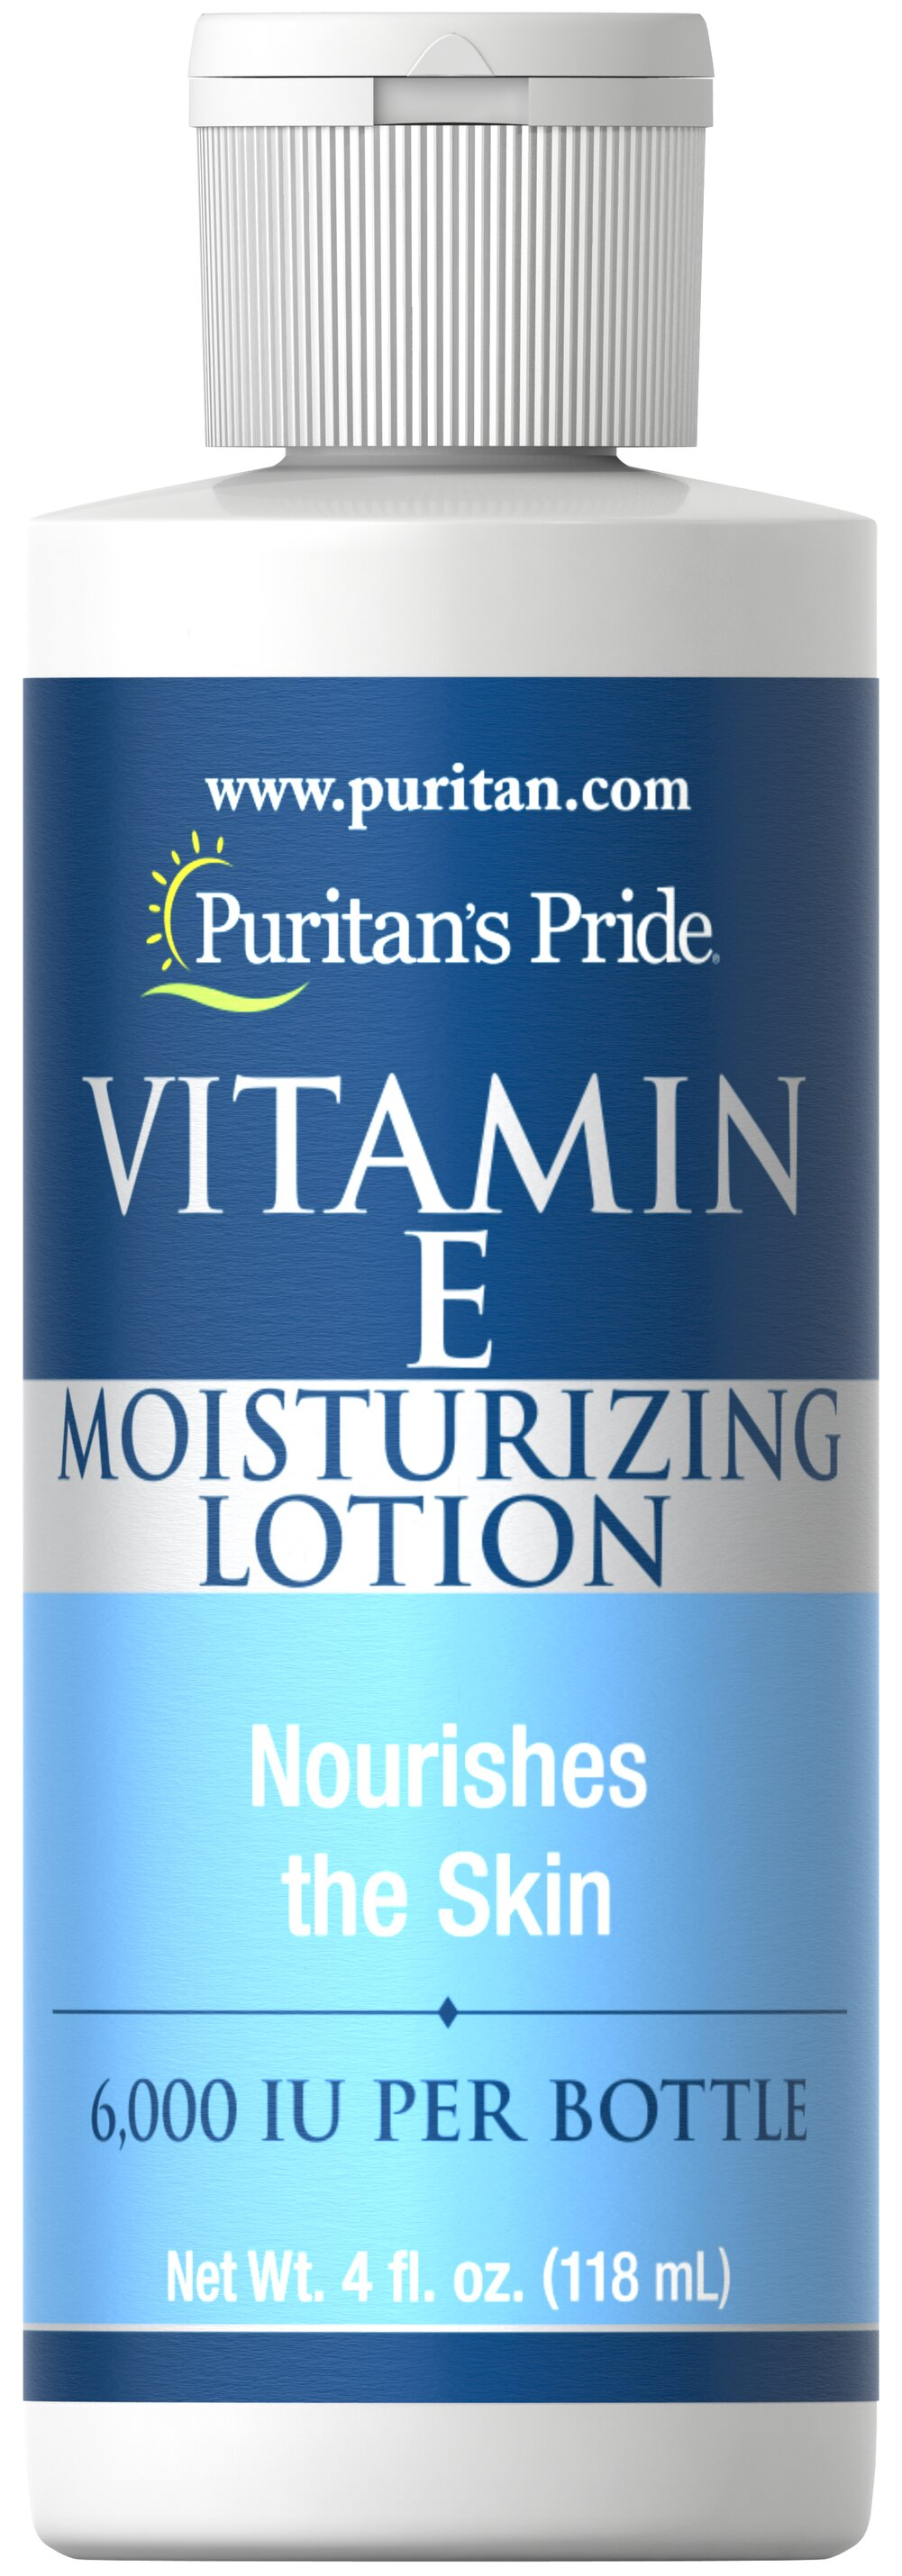 Vitamin E Moisturizing Lotion 6,000 IU